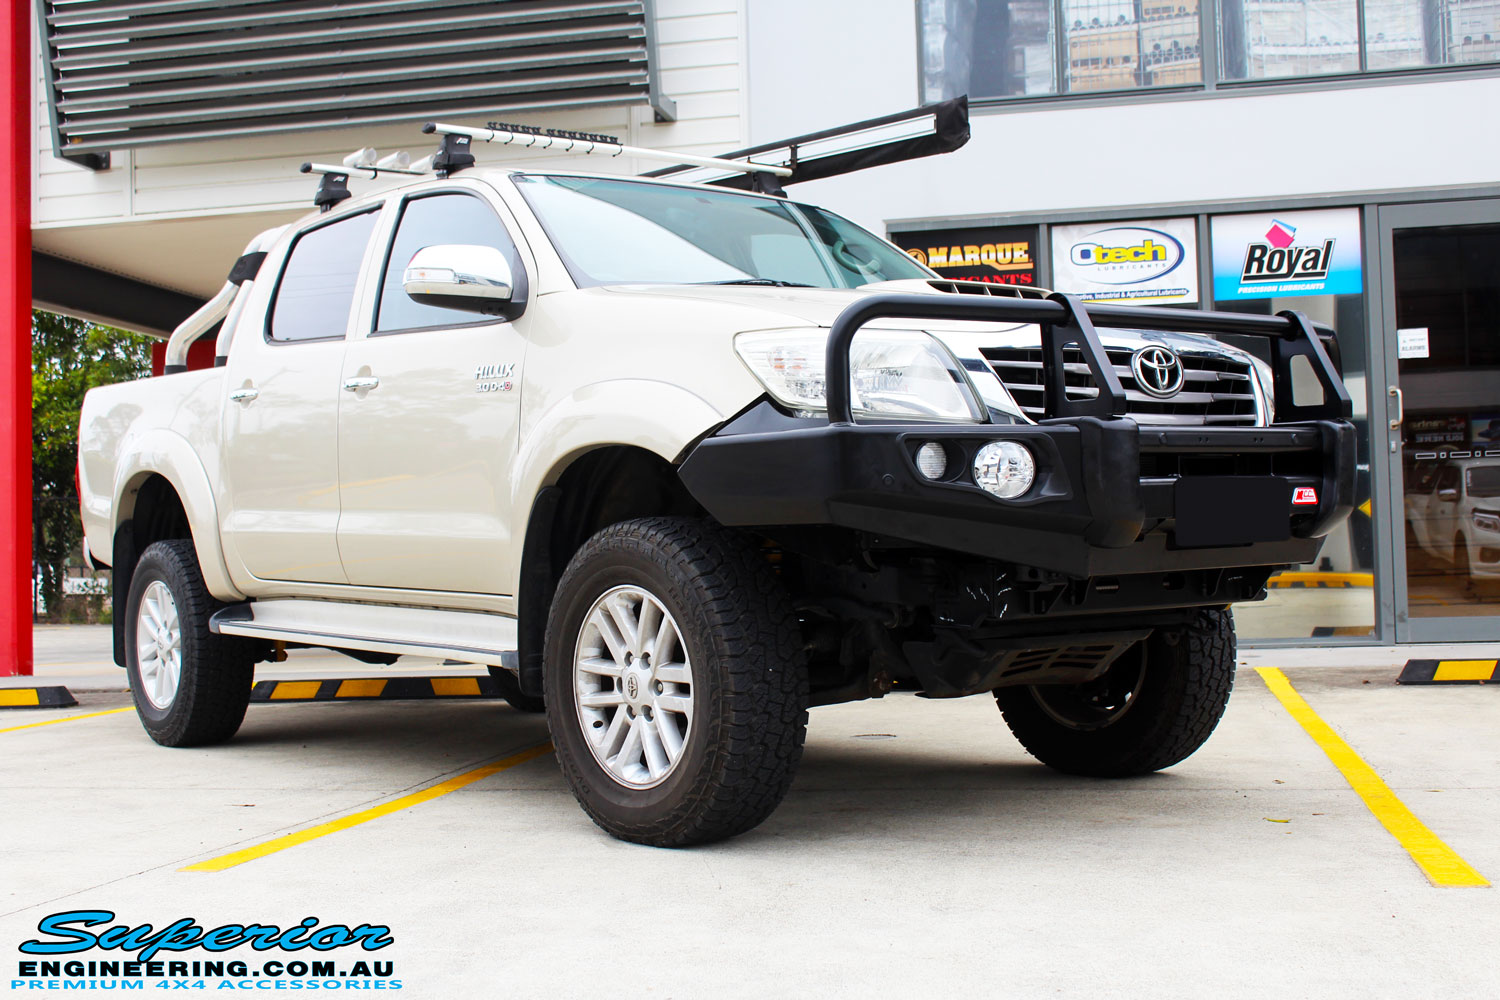 "Right front side view of a Gold Toyota Vigo Hilux Dual Cab after fitment of a 2"" Inch Lift Kit & MCC4x4 Bullbar"